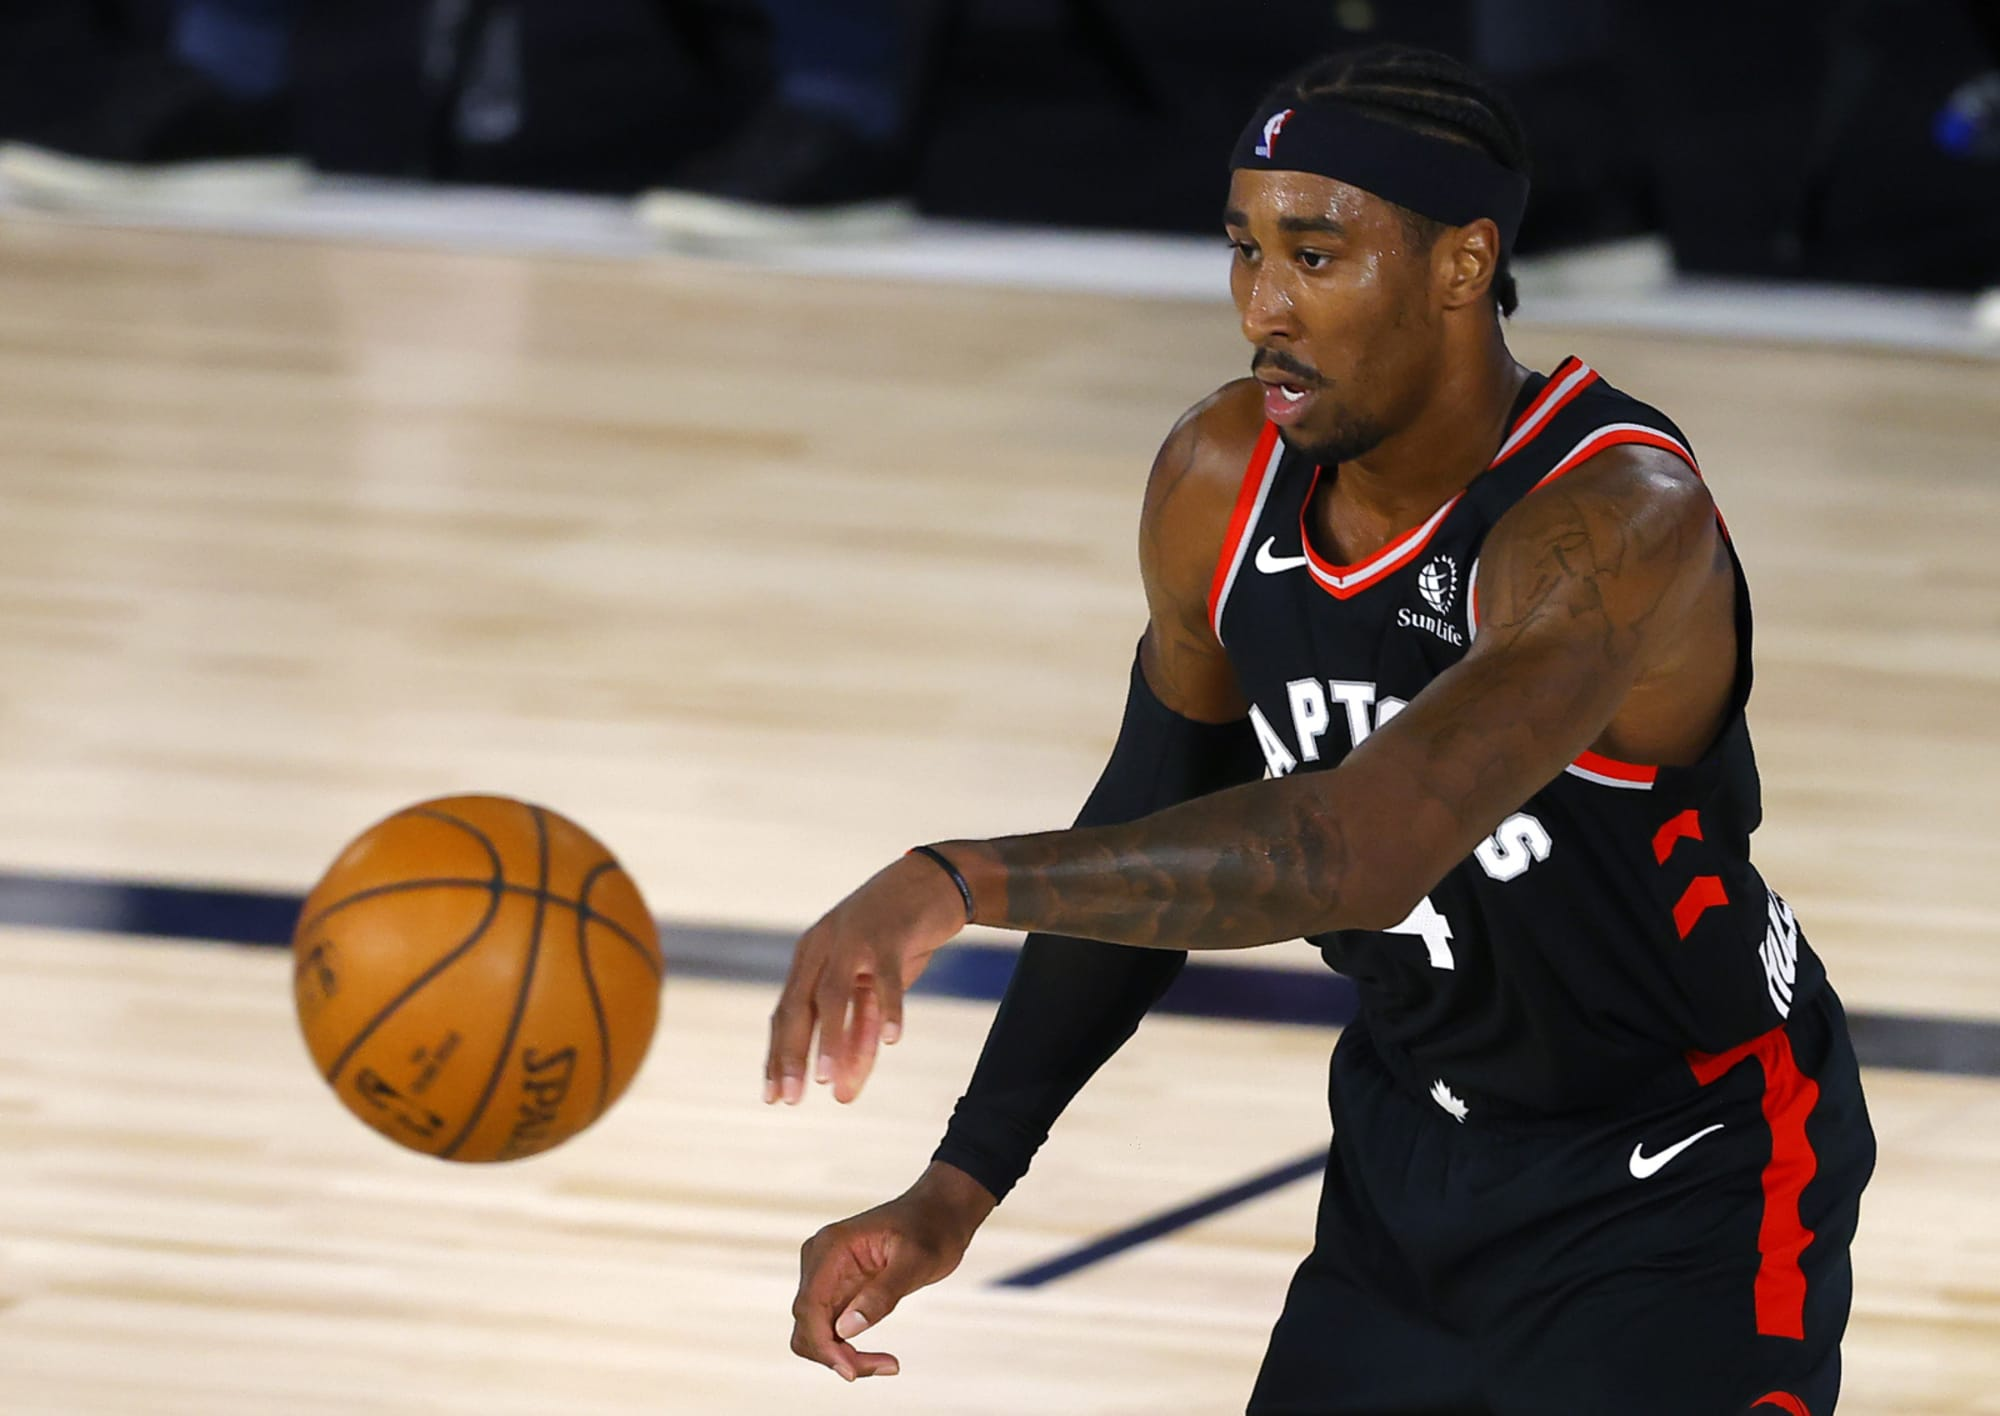 Toronto Raptors: Rondae Hollis-Jefferson signing with Blazers shows how Raptors screwed up 2020 offseason